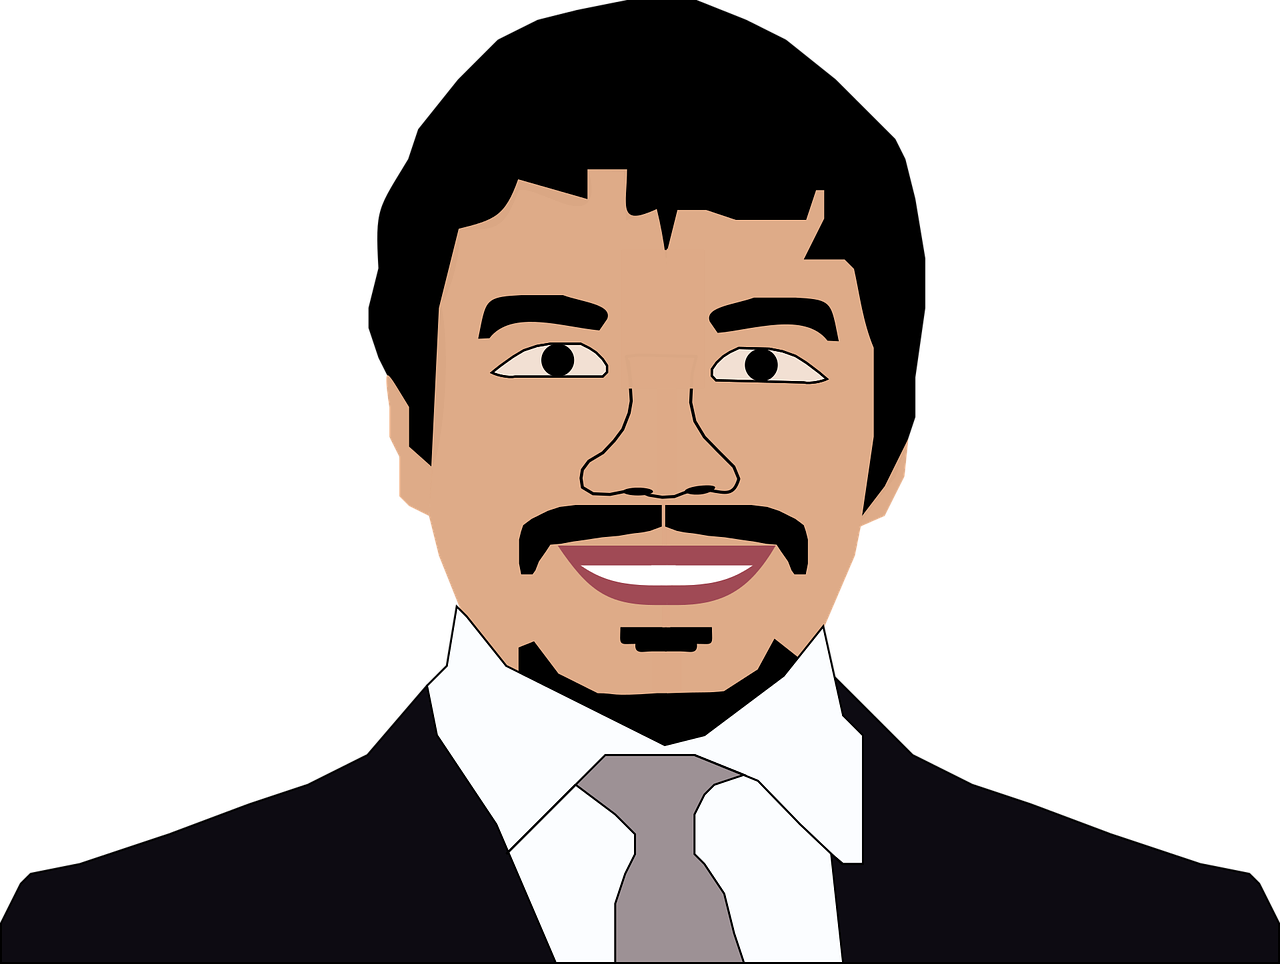 boxer,boxing,filipino,filipino boxer,manny,manny pacquiao,world champion,free vector graphics,free pictures, free photos, free images, royalty free, free illustrations, public domain